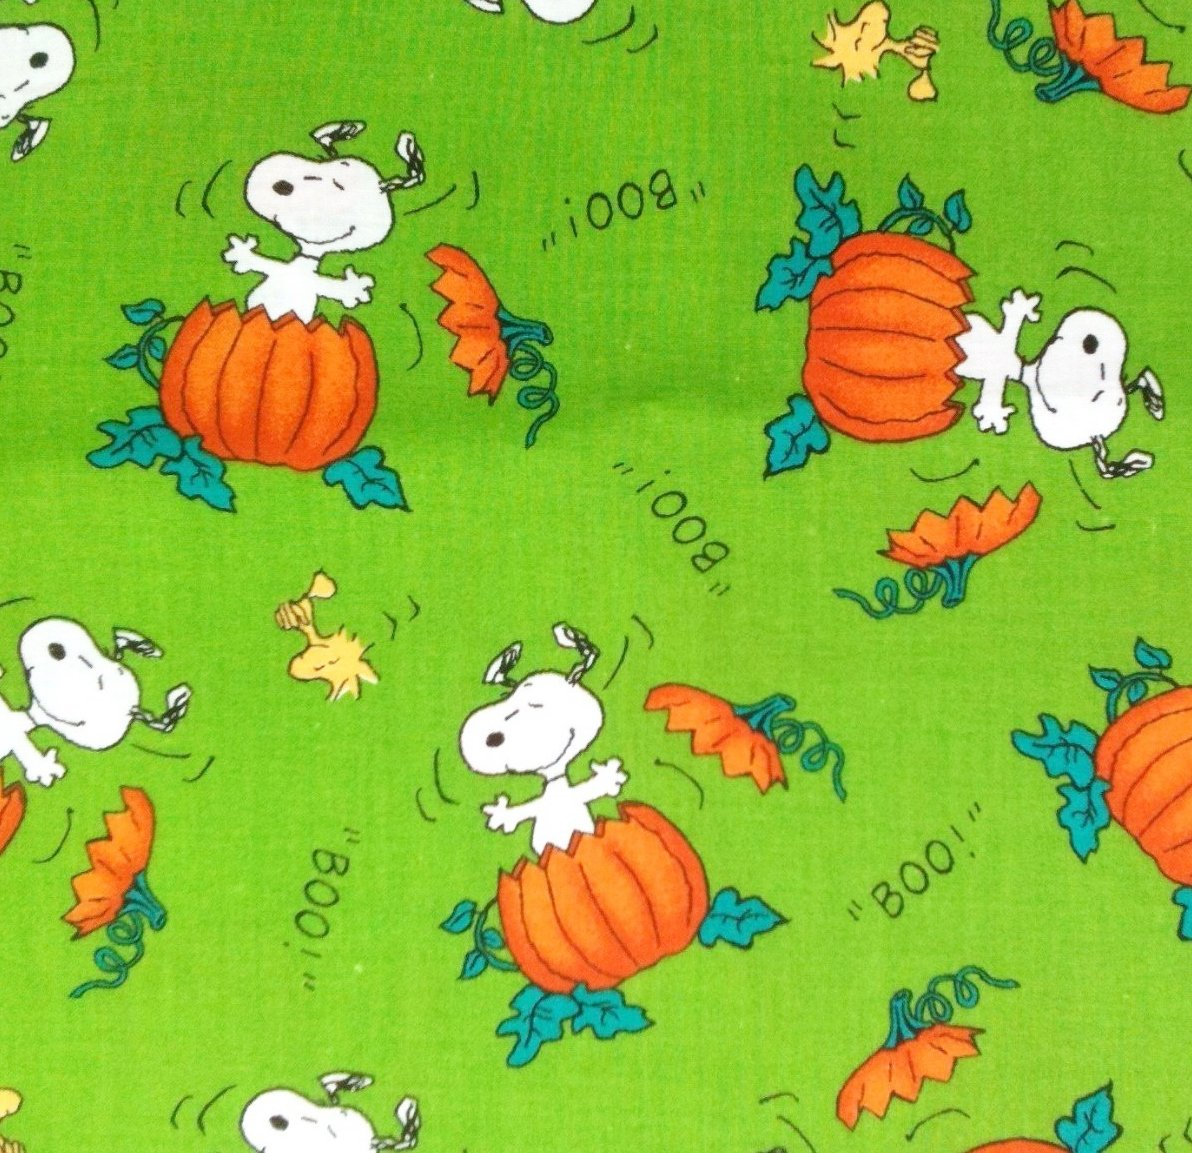 1/2 Yard - Snoopy & Woodstock The Great Pumpkin on Green Peanuts Halloween Fabric (Great for Quilting, Sewing, Craft Projects, Throw Pillows & More) 1/2 Yard X 44 Wide Concord Fabrics Inc.